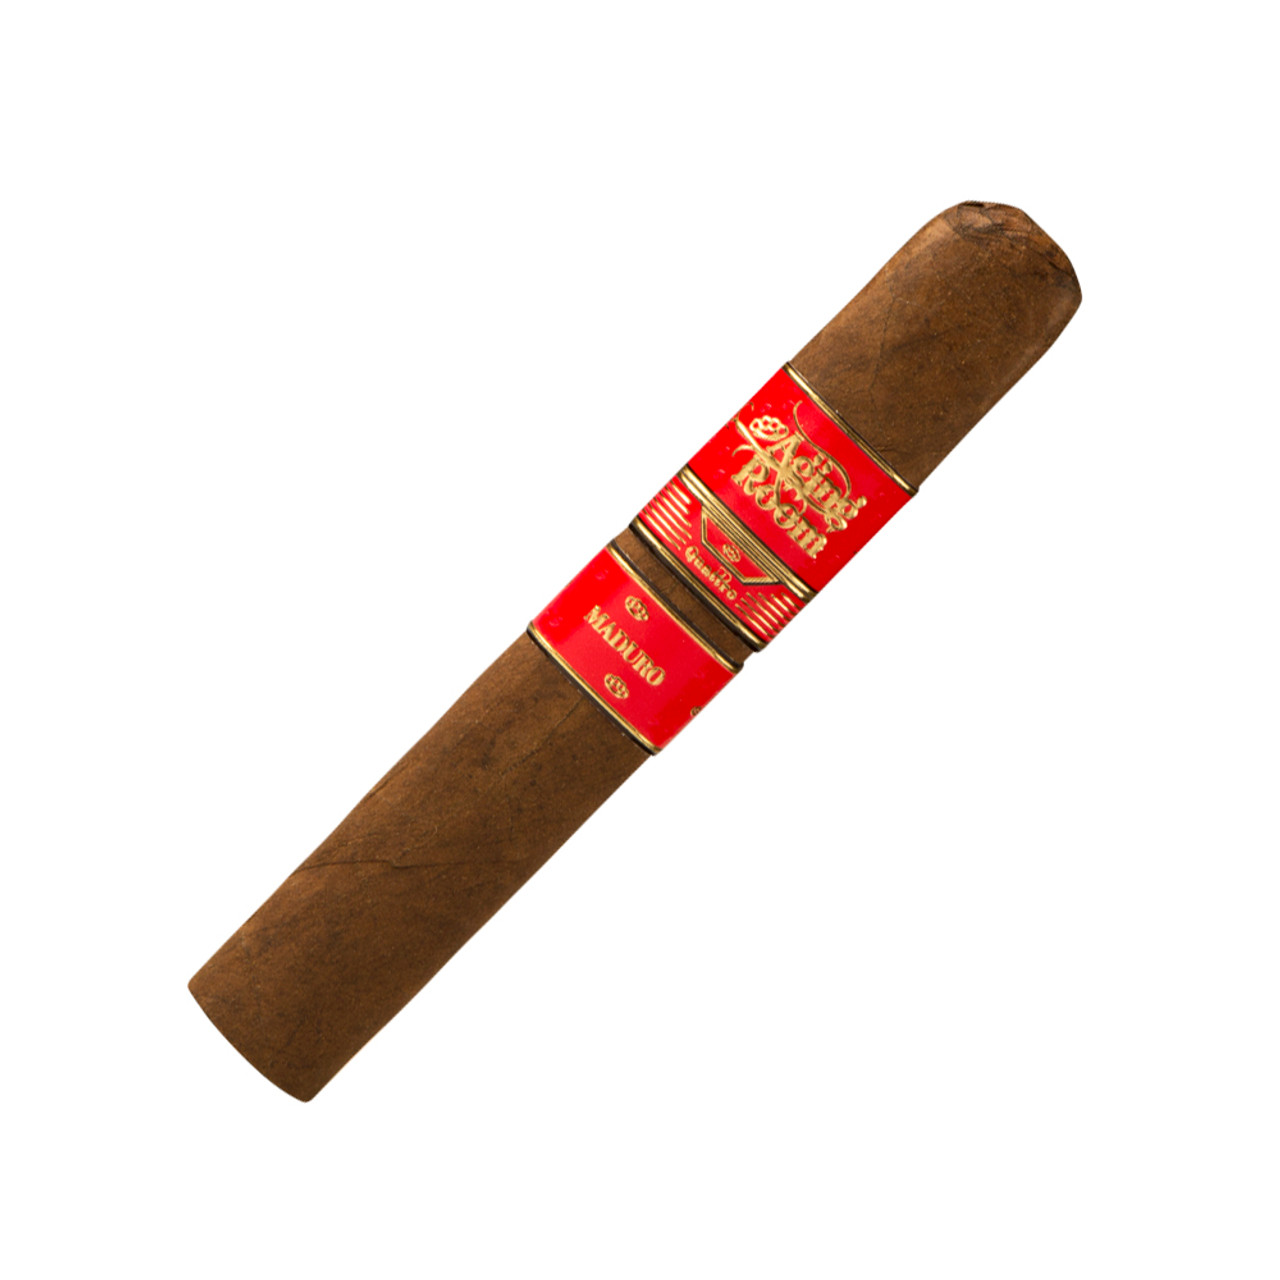 Aging Room Quattro by Rafael Nodal Maduro Expressivo Cigars - 5 x 50 (Box of 20)